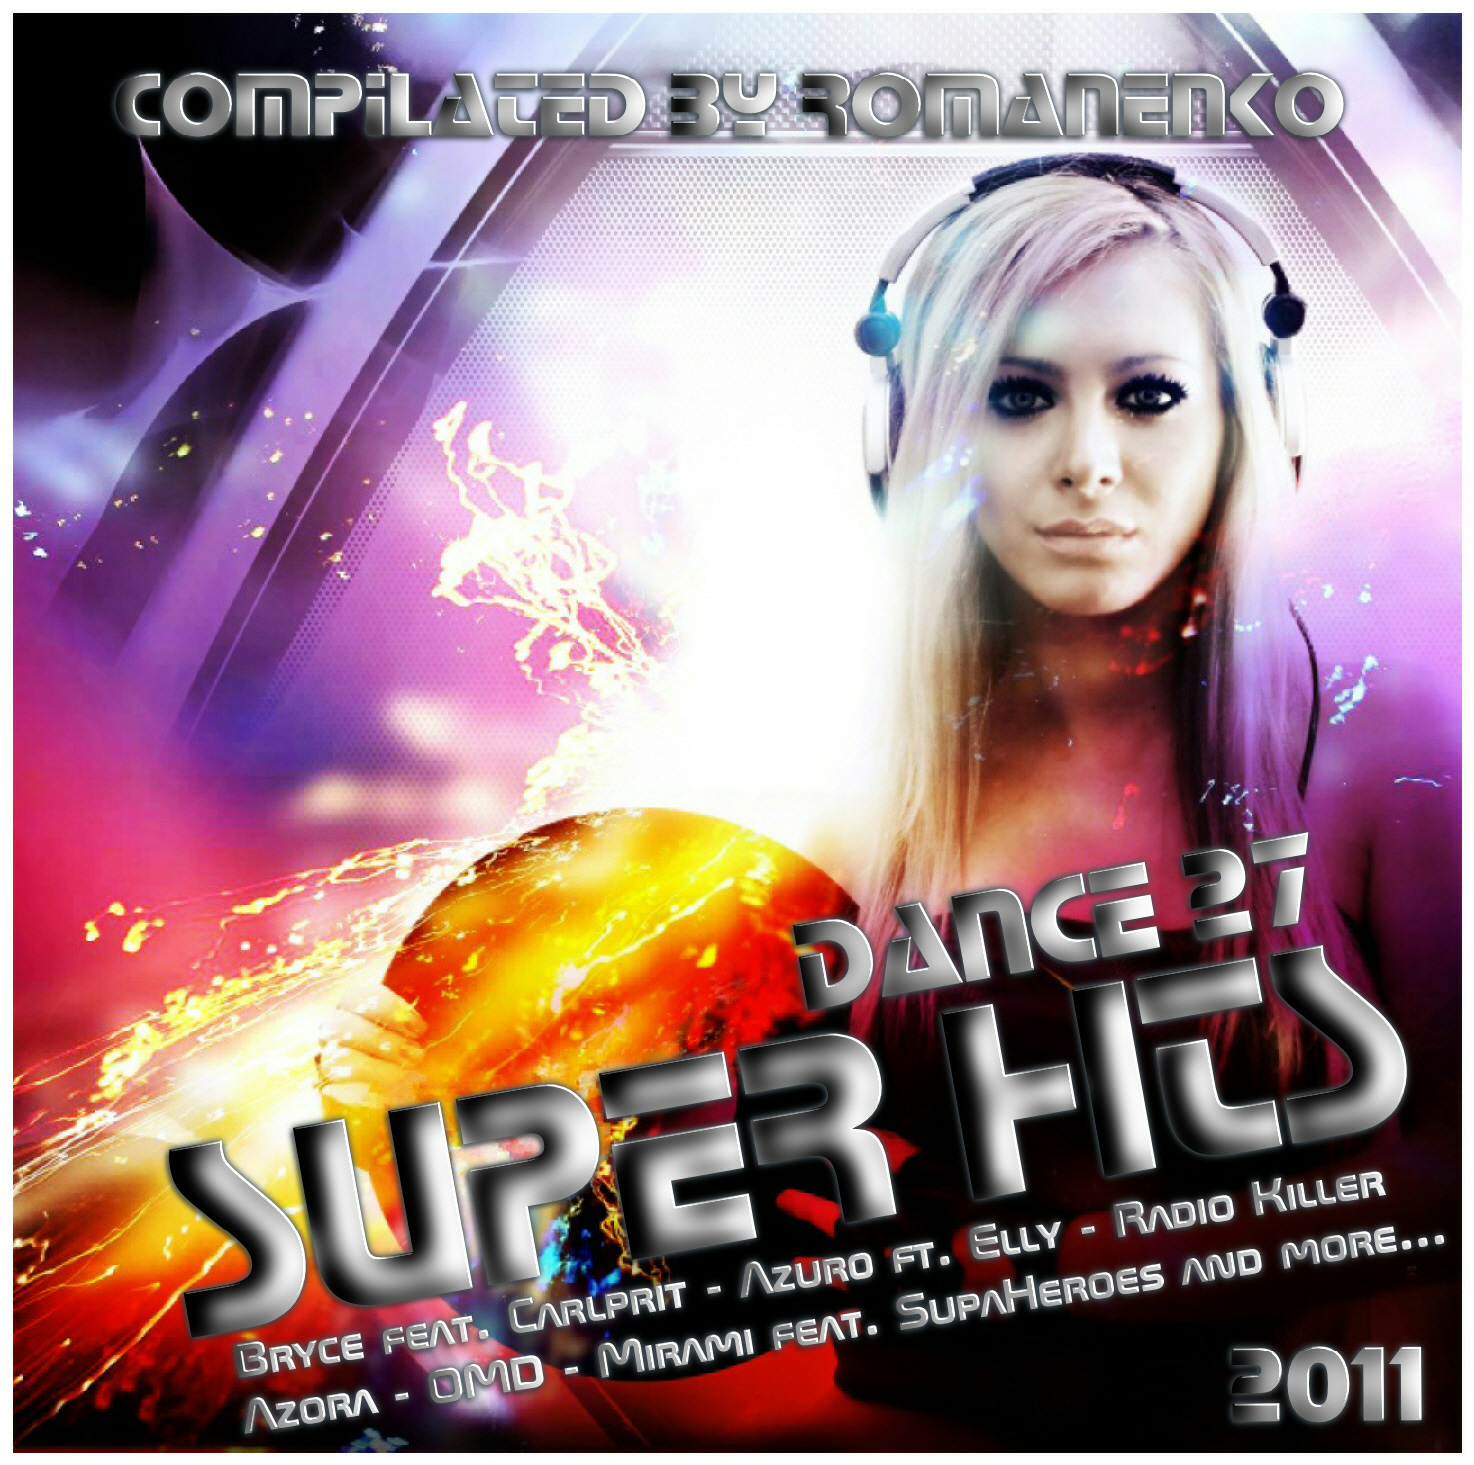 V.A - Super Hits Dance Vol 27 2011 (CD ORIGINAL)